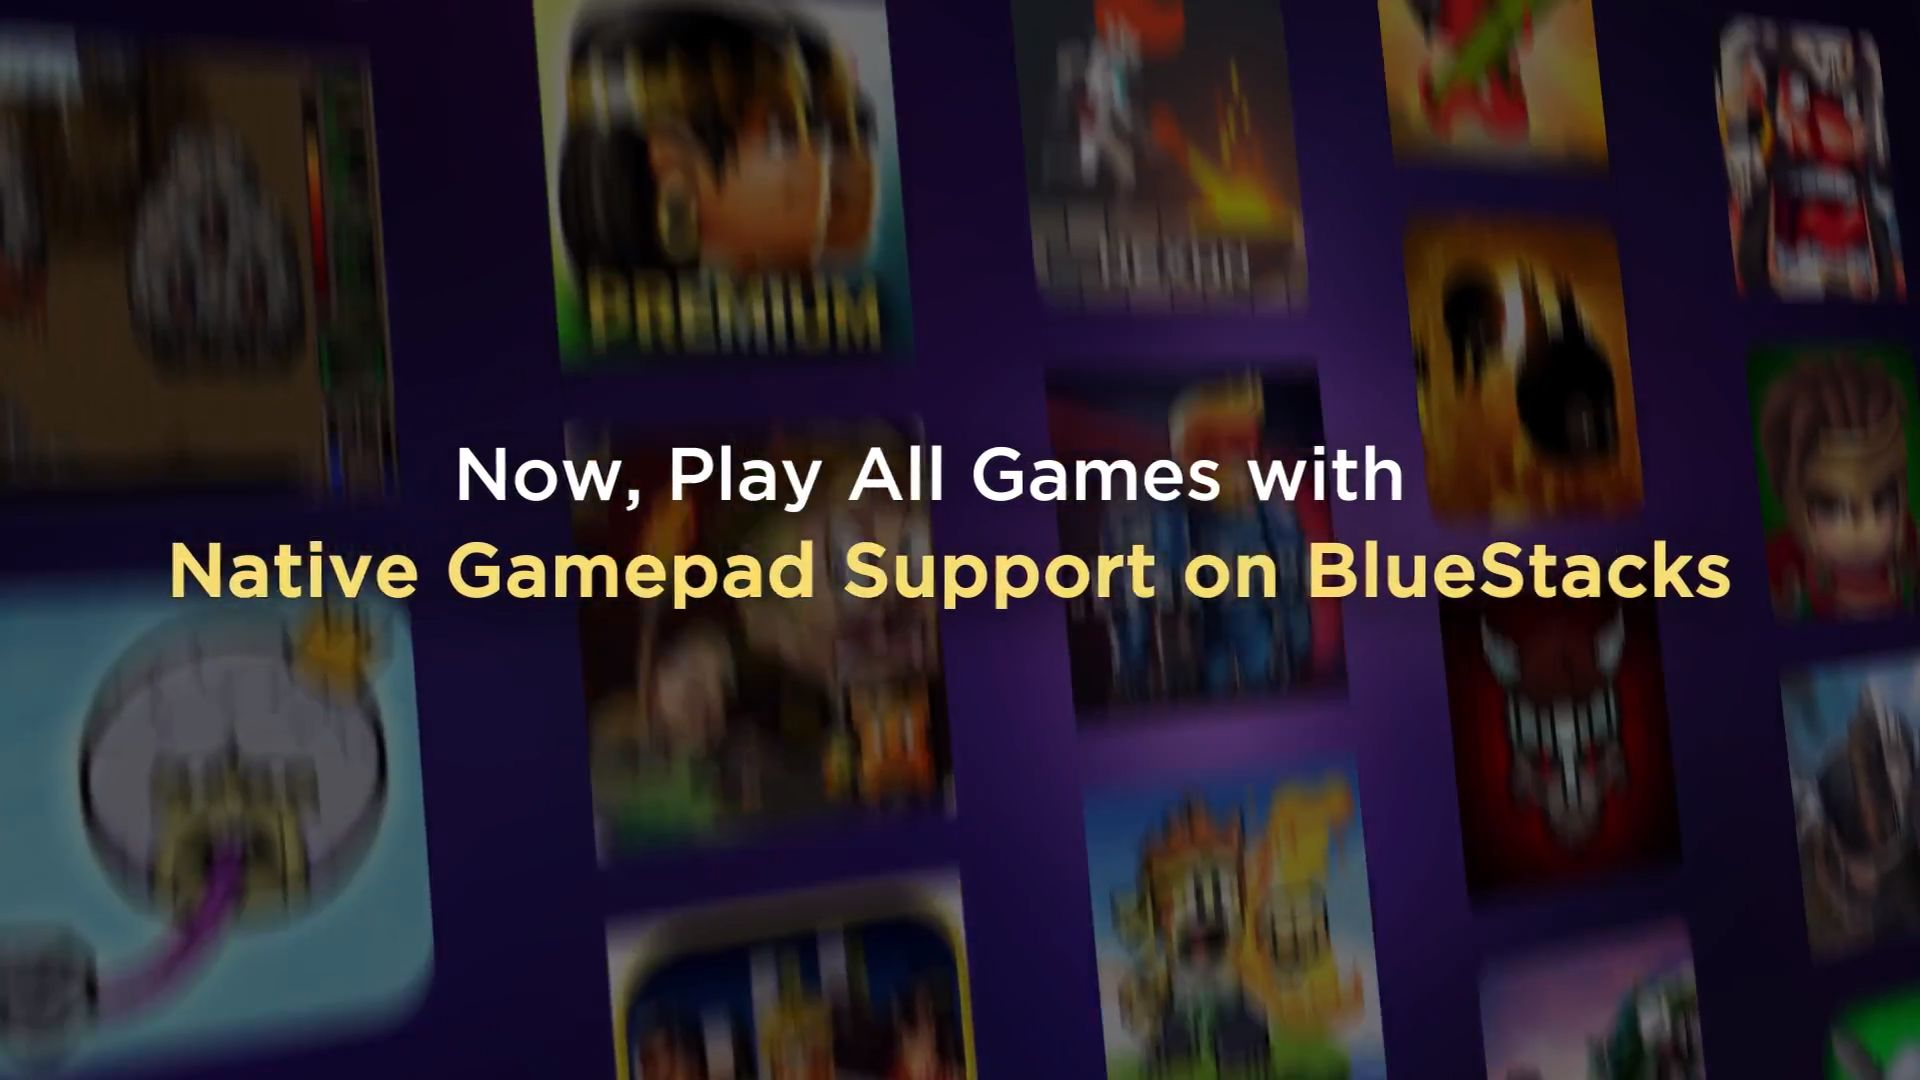 Native Gamepad Support – BlueStacks Gamepad Support Just Got Better!